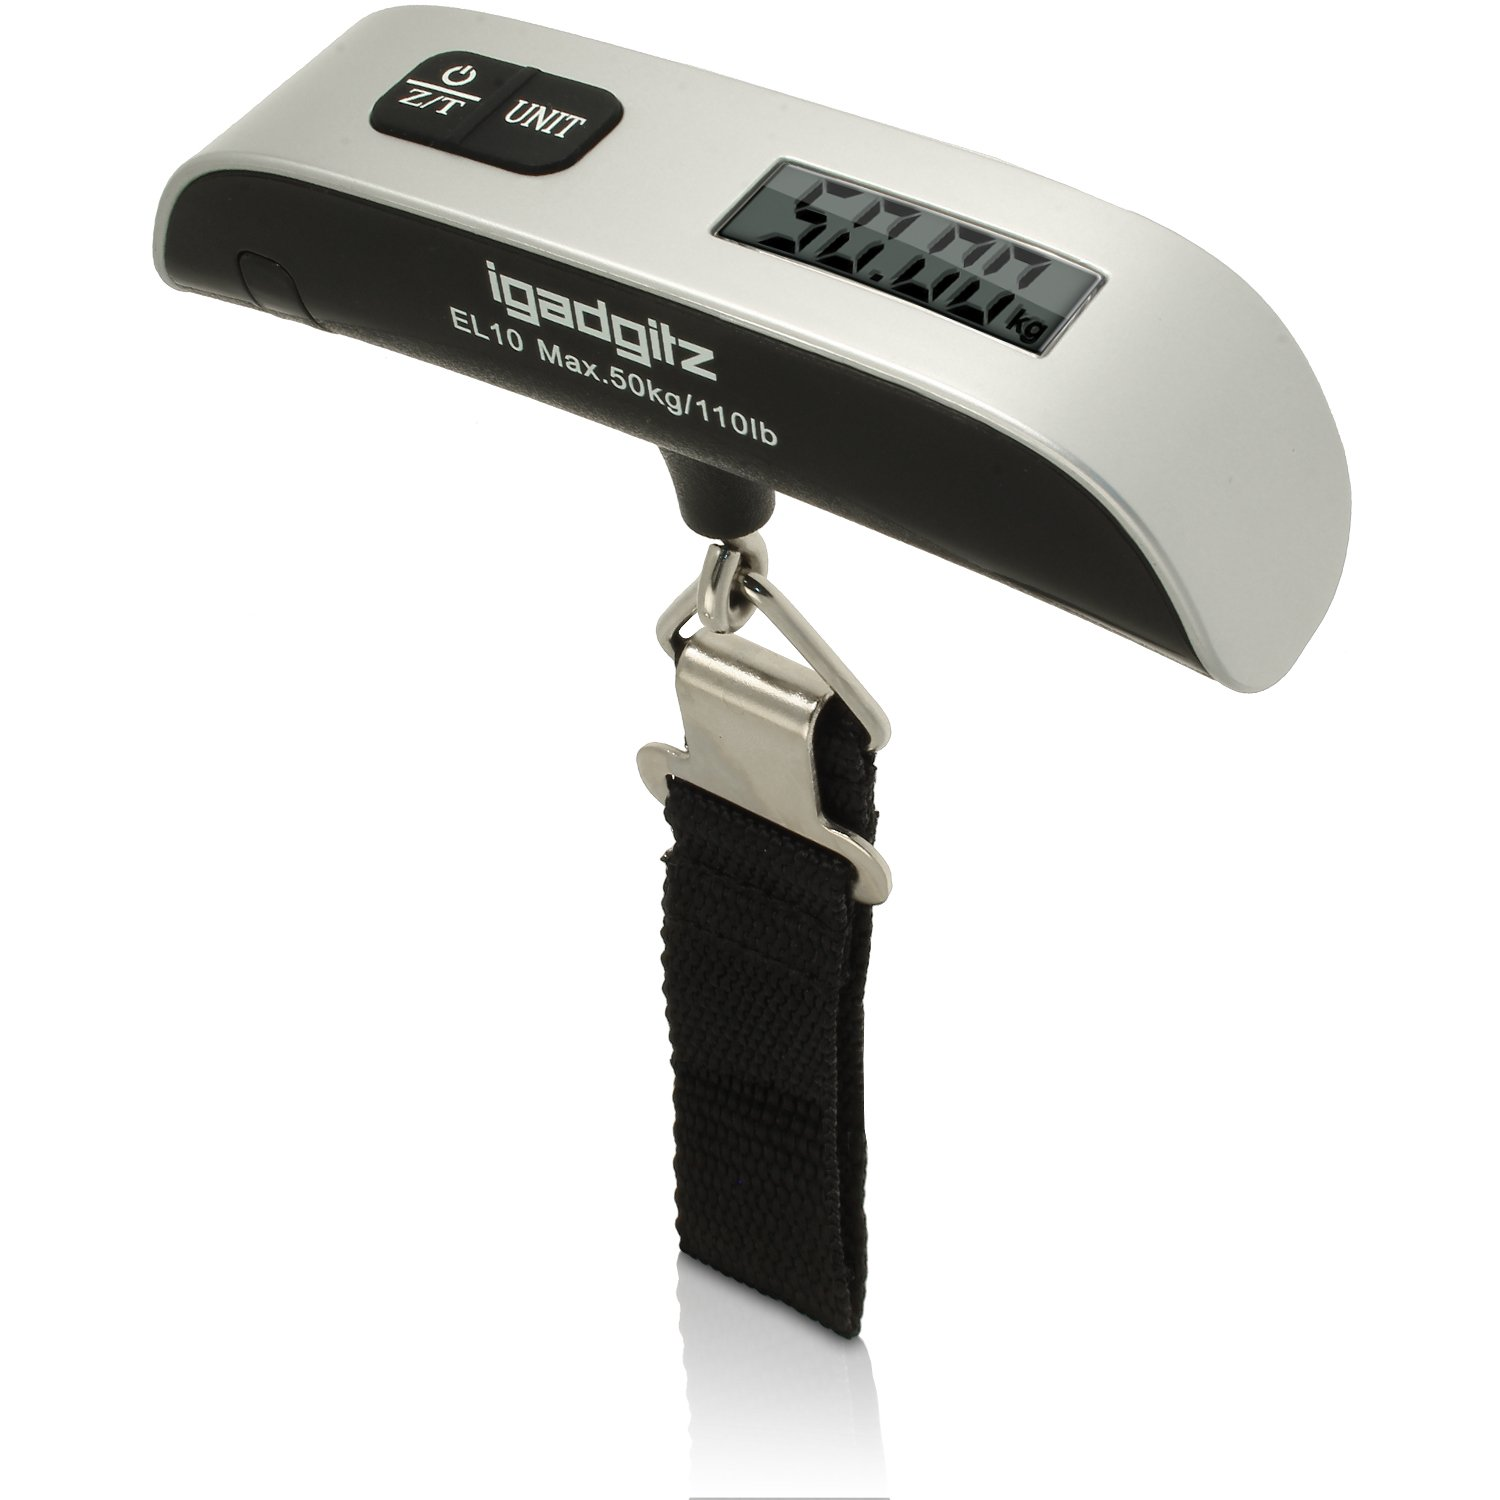 iGadgitz Xtra Portable Digital LCD Handheld Luggage Baggage Scales 50kg 50g (110lbs/0.1lb) + Temp Display product image